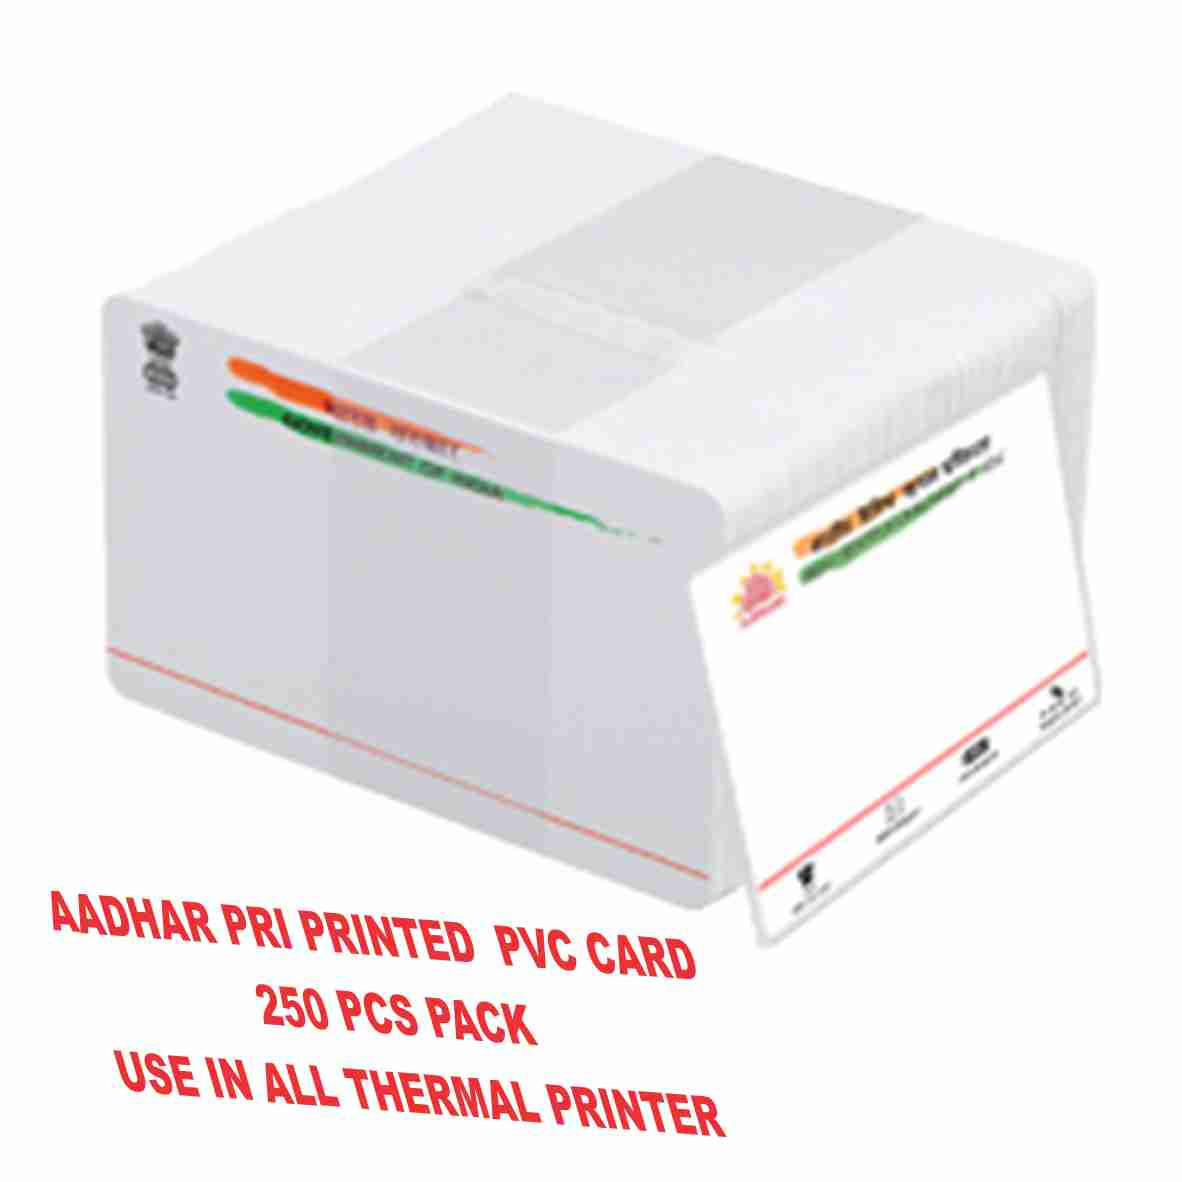 DDS AADHHAR ID Pre - Printed PVC CARD For Thermal Printers 250pcs